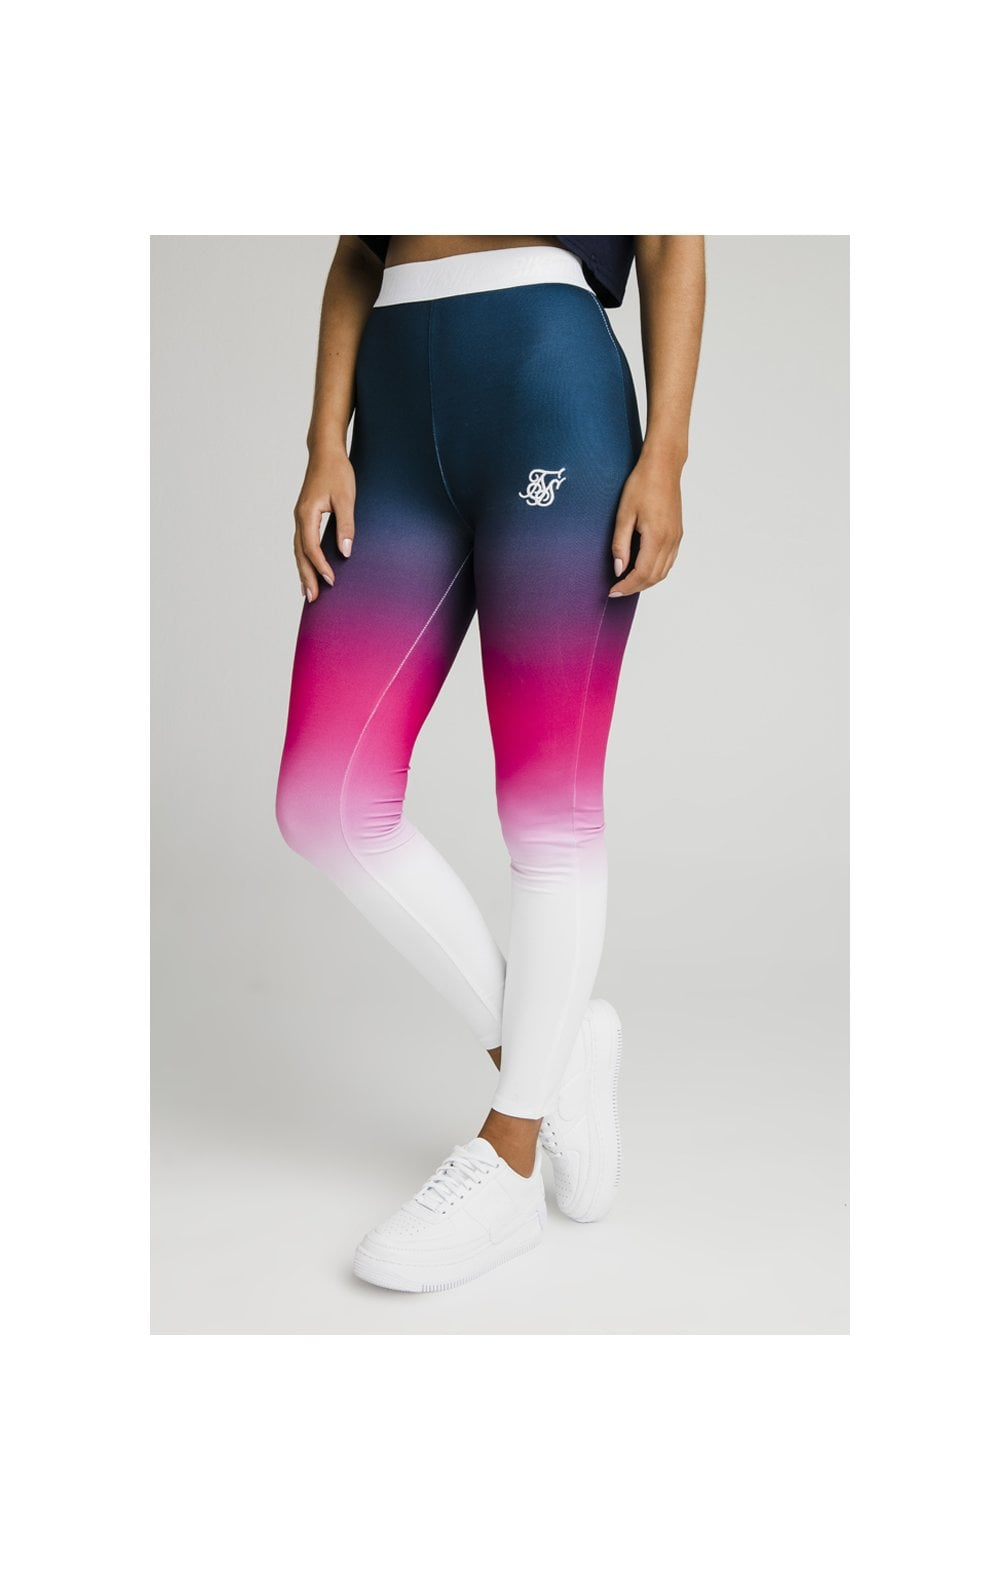 SikSilk Fade Tape Leggings - Navy, Pink & White